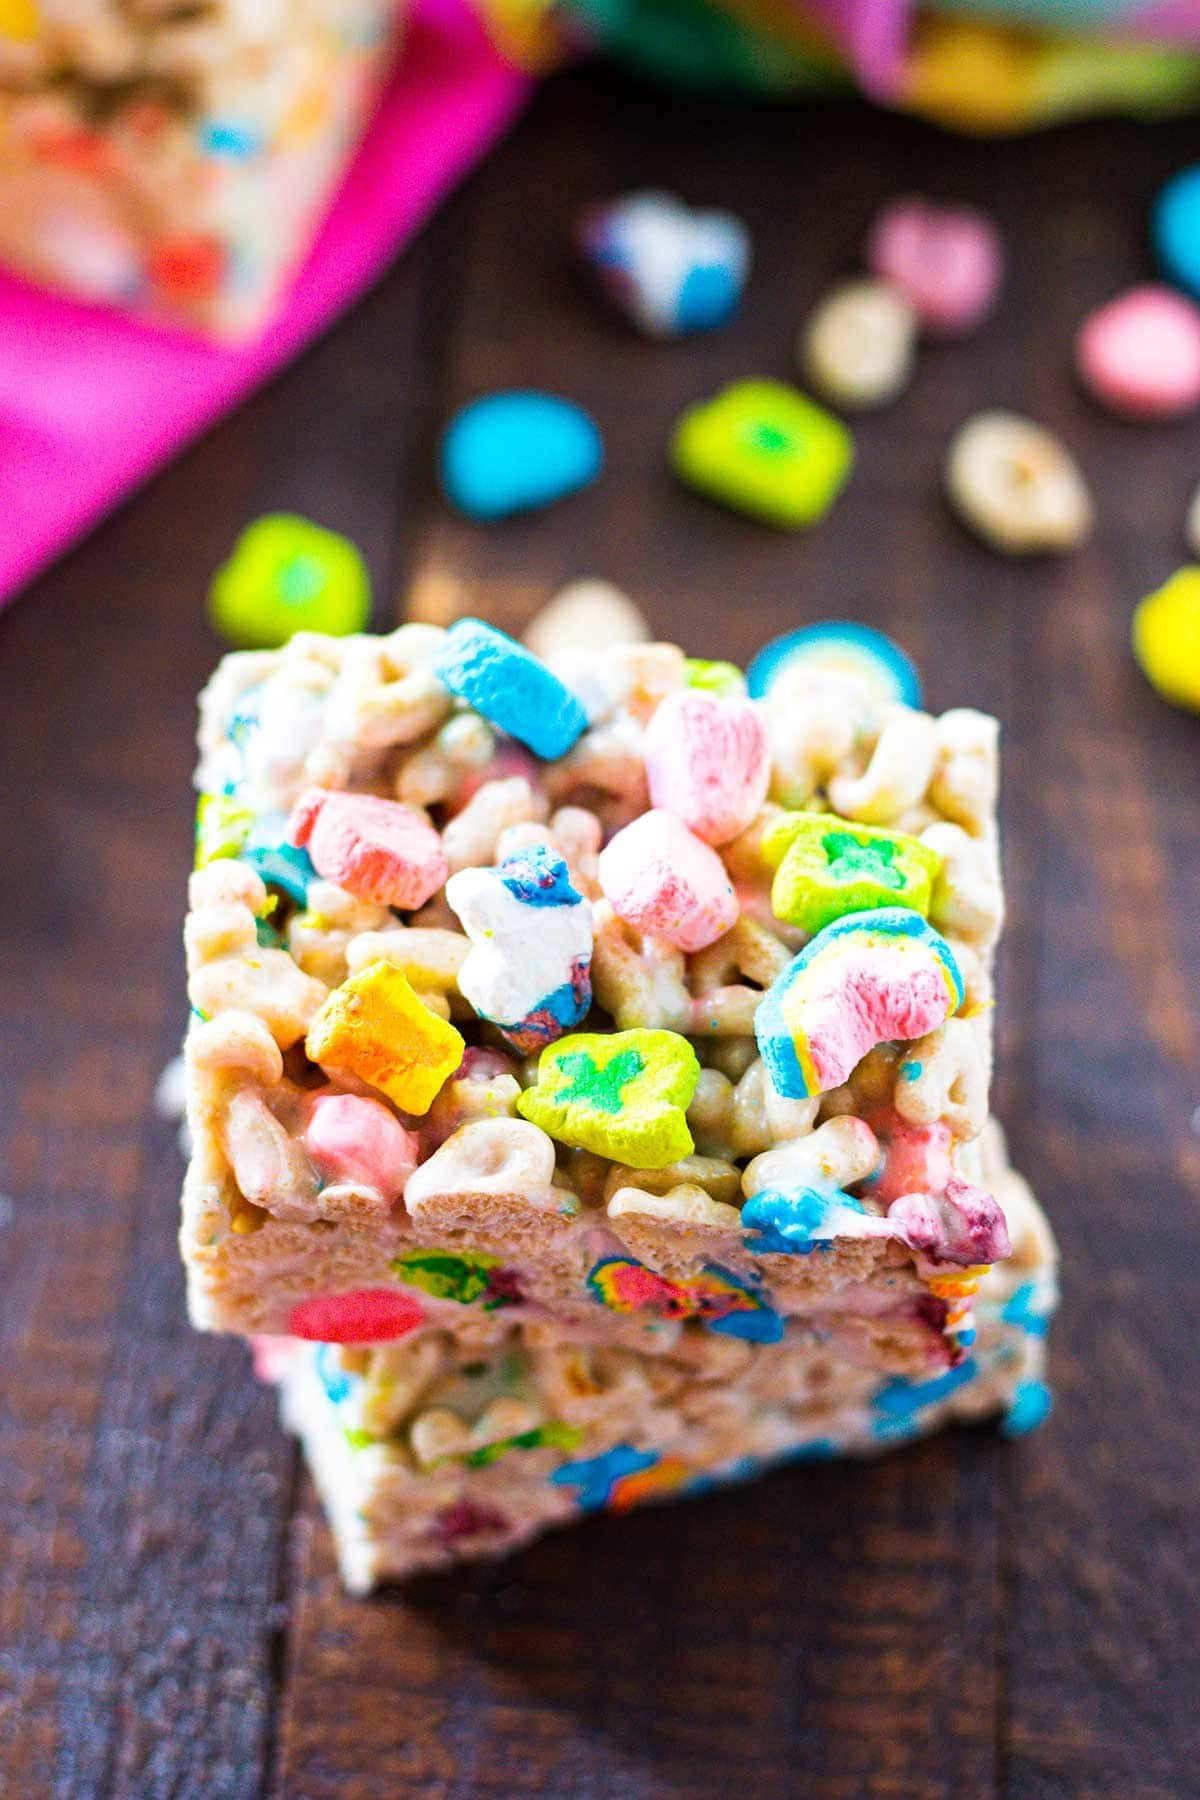 Lucky Charms Marshmallow Treats on a cutting board with Lucky Charms cereal scattered in the background.